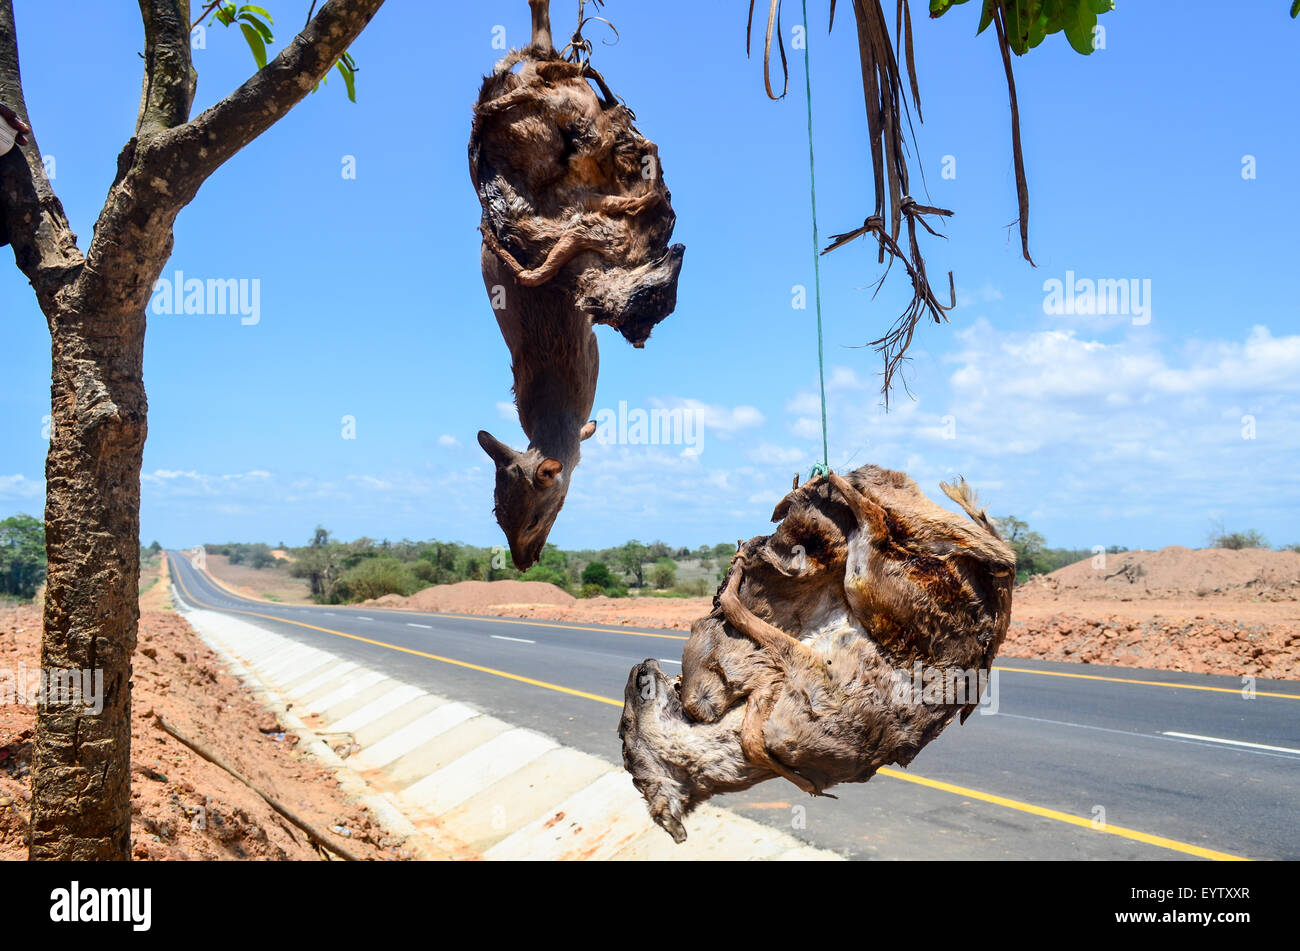 Bush meat (antelopes) hanging by a brand new tar road in Angola - Stock Image